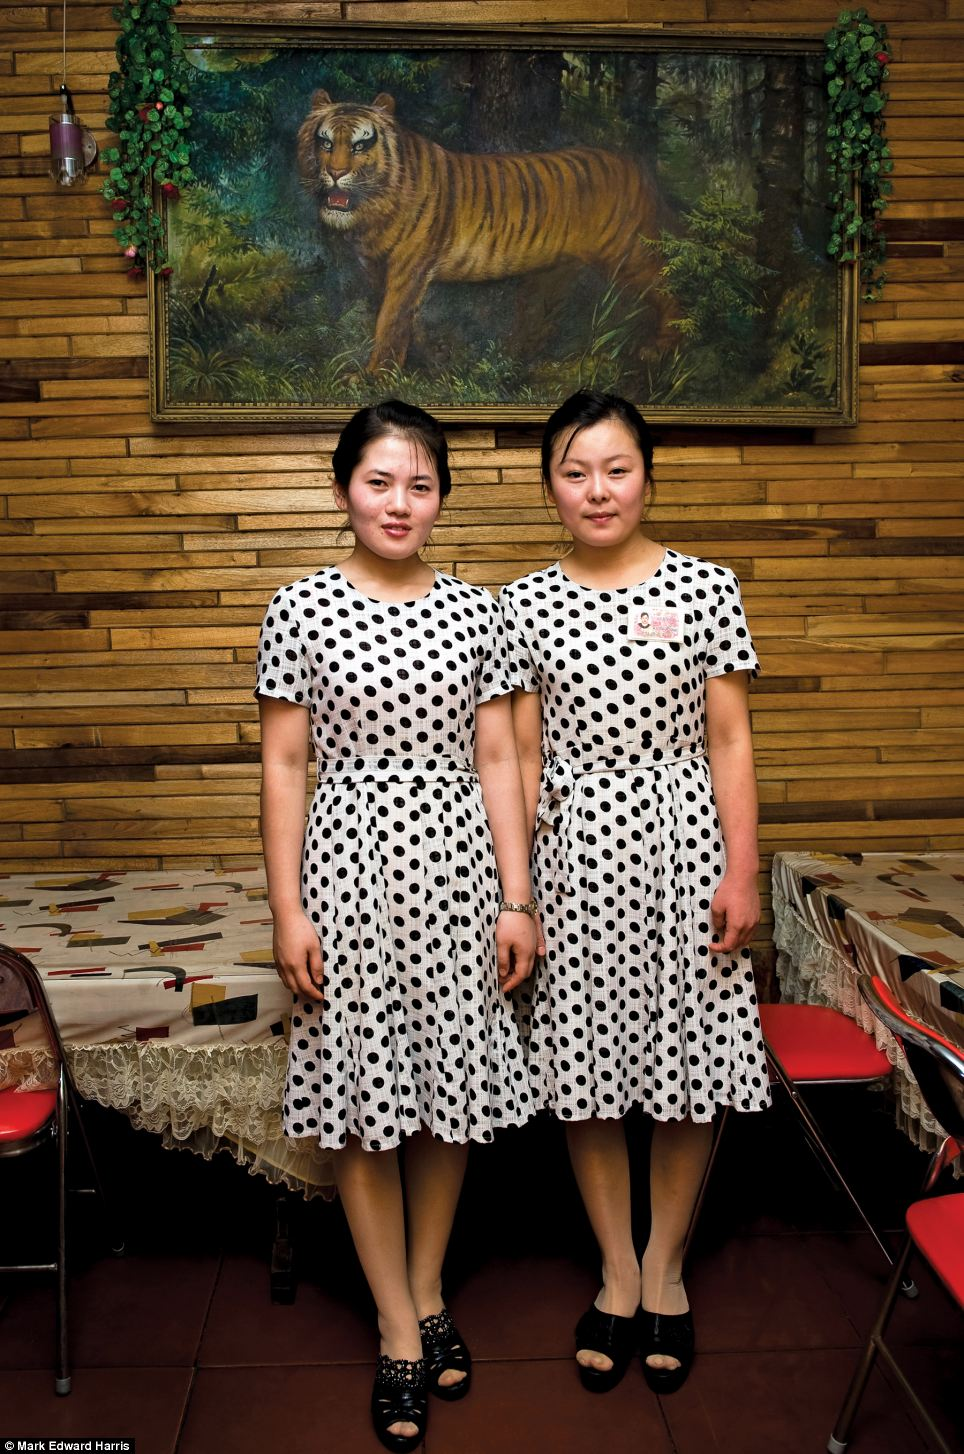 Away from the military patrols, two waitresses stand in front of a tiger portrait in Wonsan, North Korea. The town is usually not accessible to tourists but photographer Mark Edward Harris was able to visit in July 2011